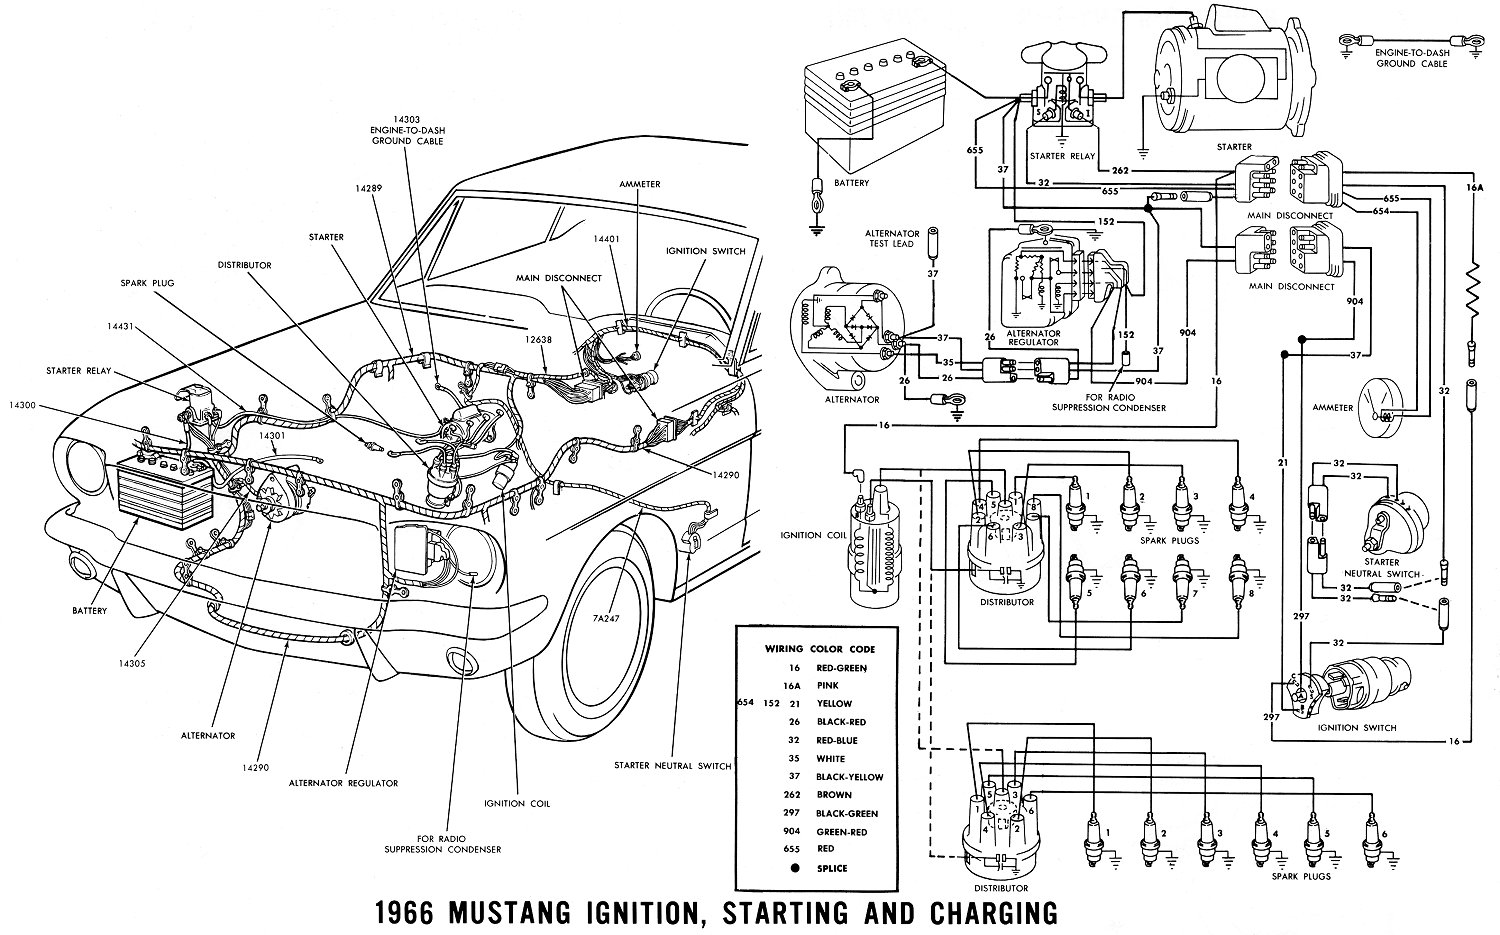 Ignition Switch Wiring Diagram Moreover 1965 Ford Mustang on 1974 super beetle fuse panel wiring